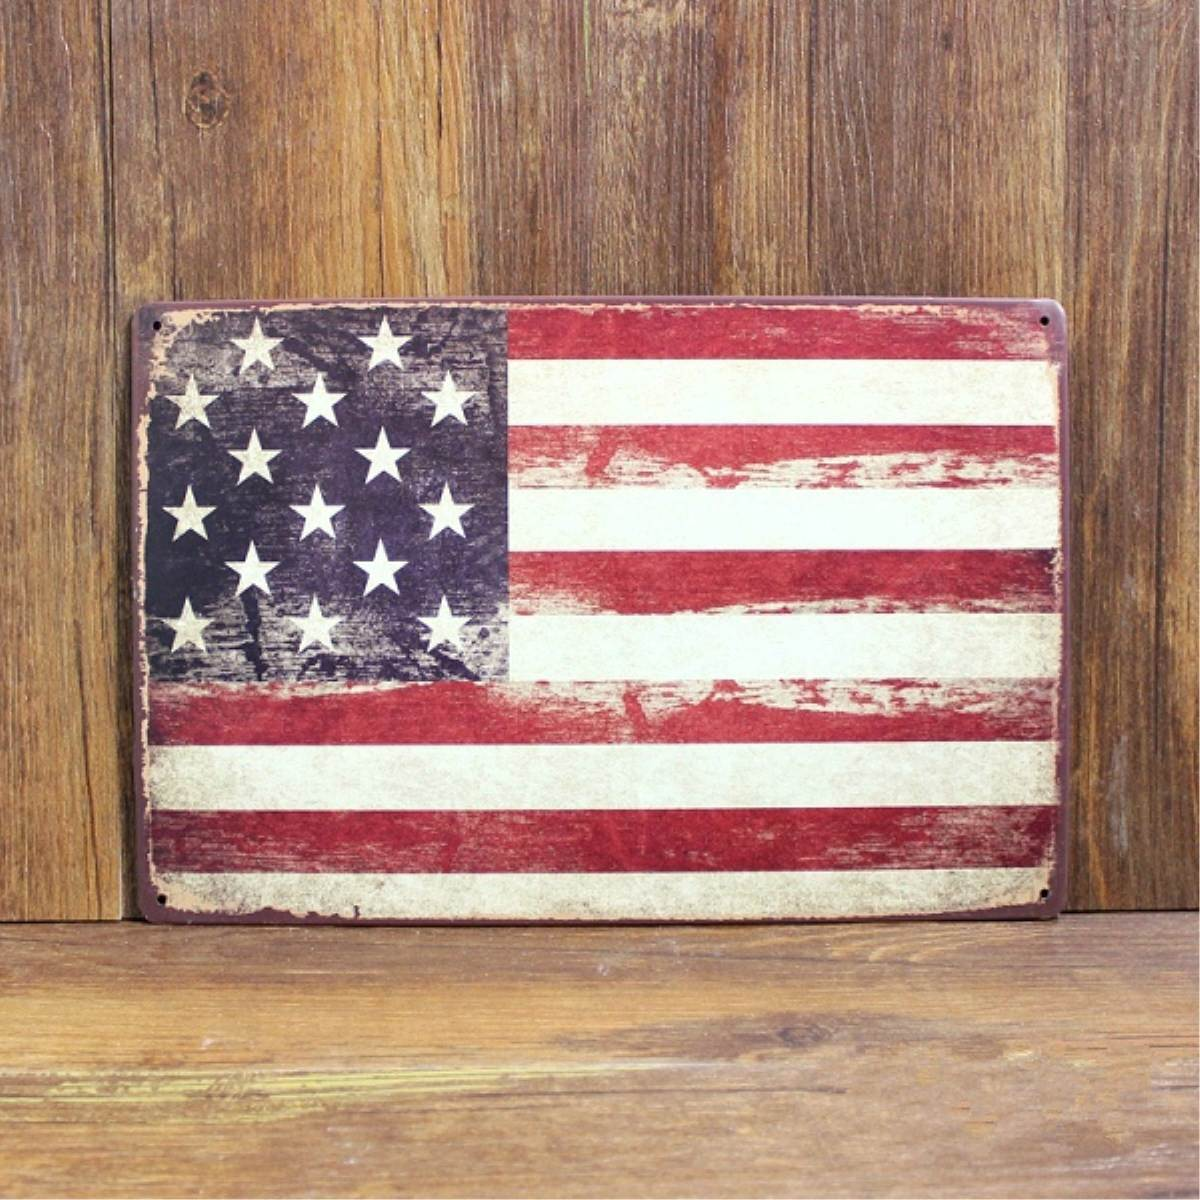 Plaque Tin Vintage USA UK Flag Sign Metal Painting Car License Plate Iron Antique Wall Decor Bar Pub Cafe Retro Poster(China (Mainland))